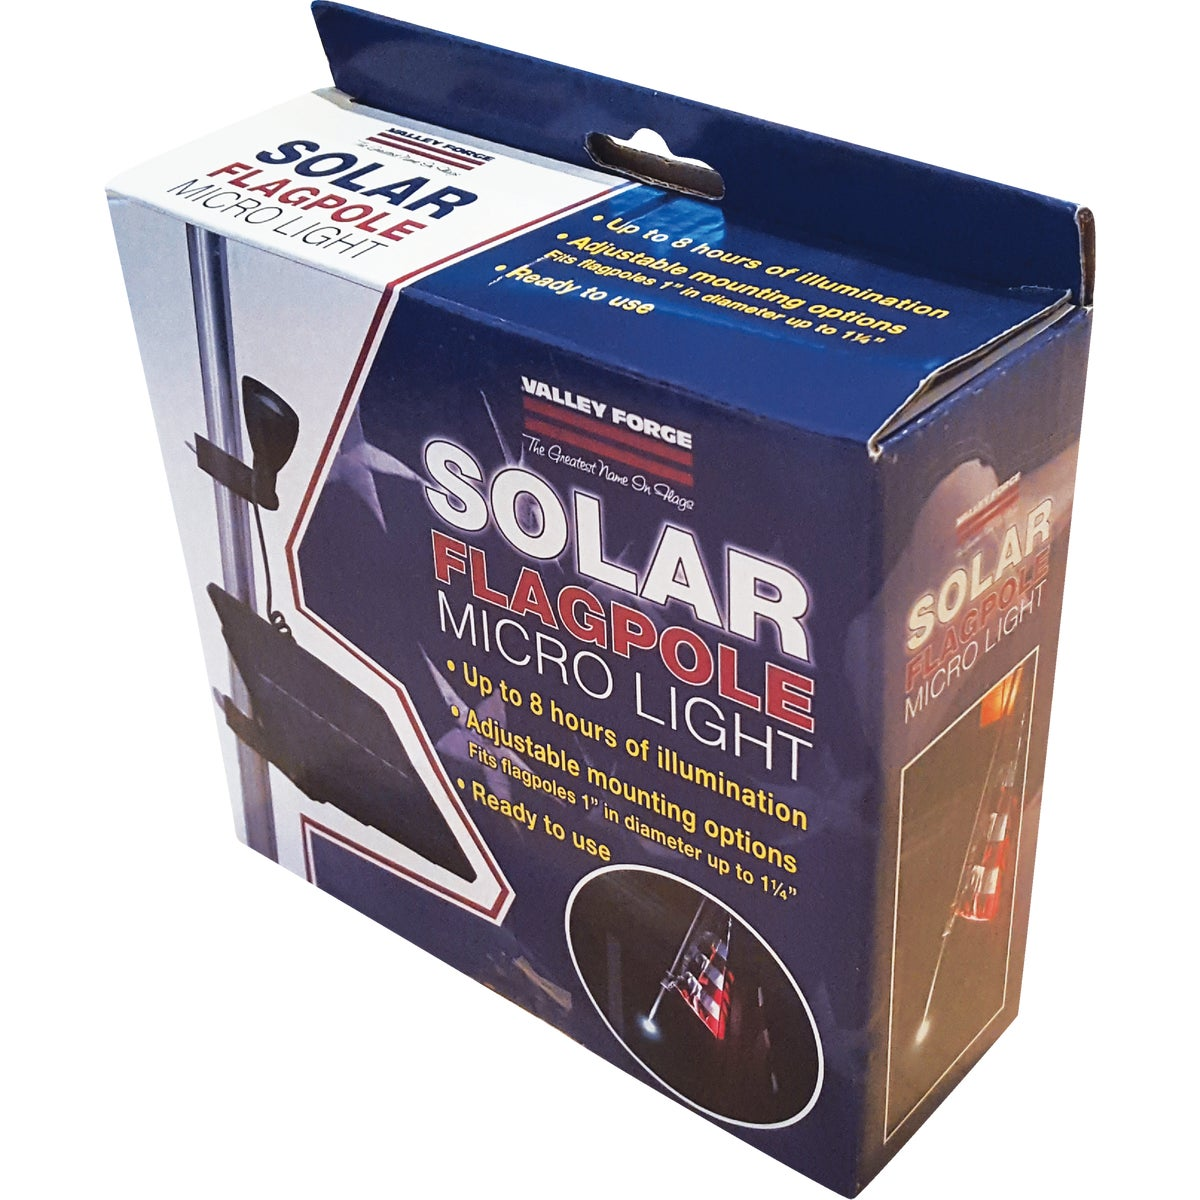 Valley Forge SOLAR FREEDOM LIGHT TLL-2